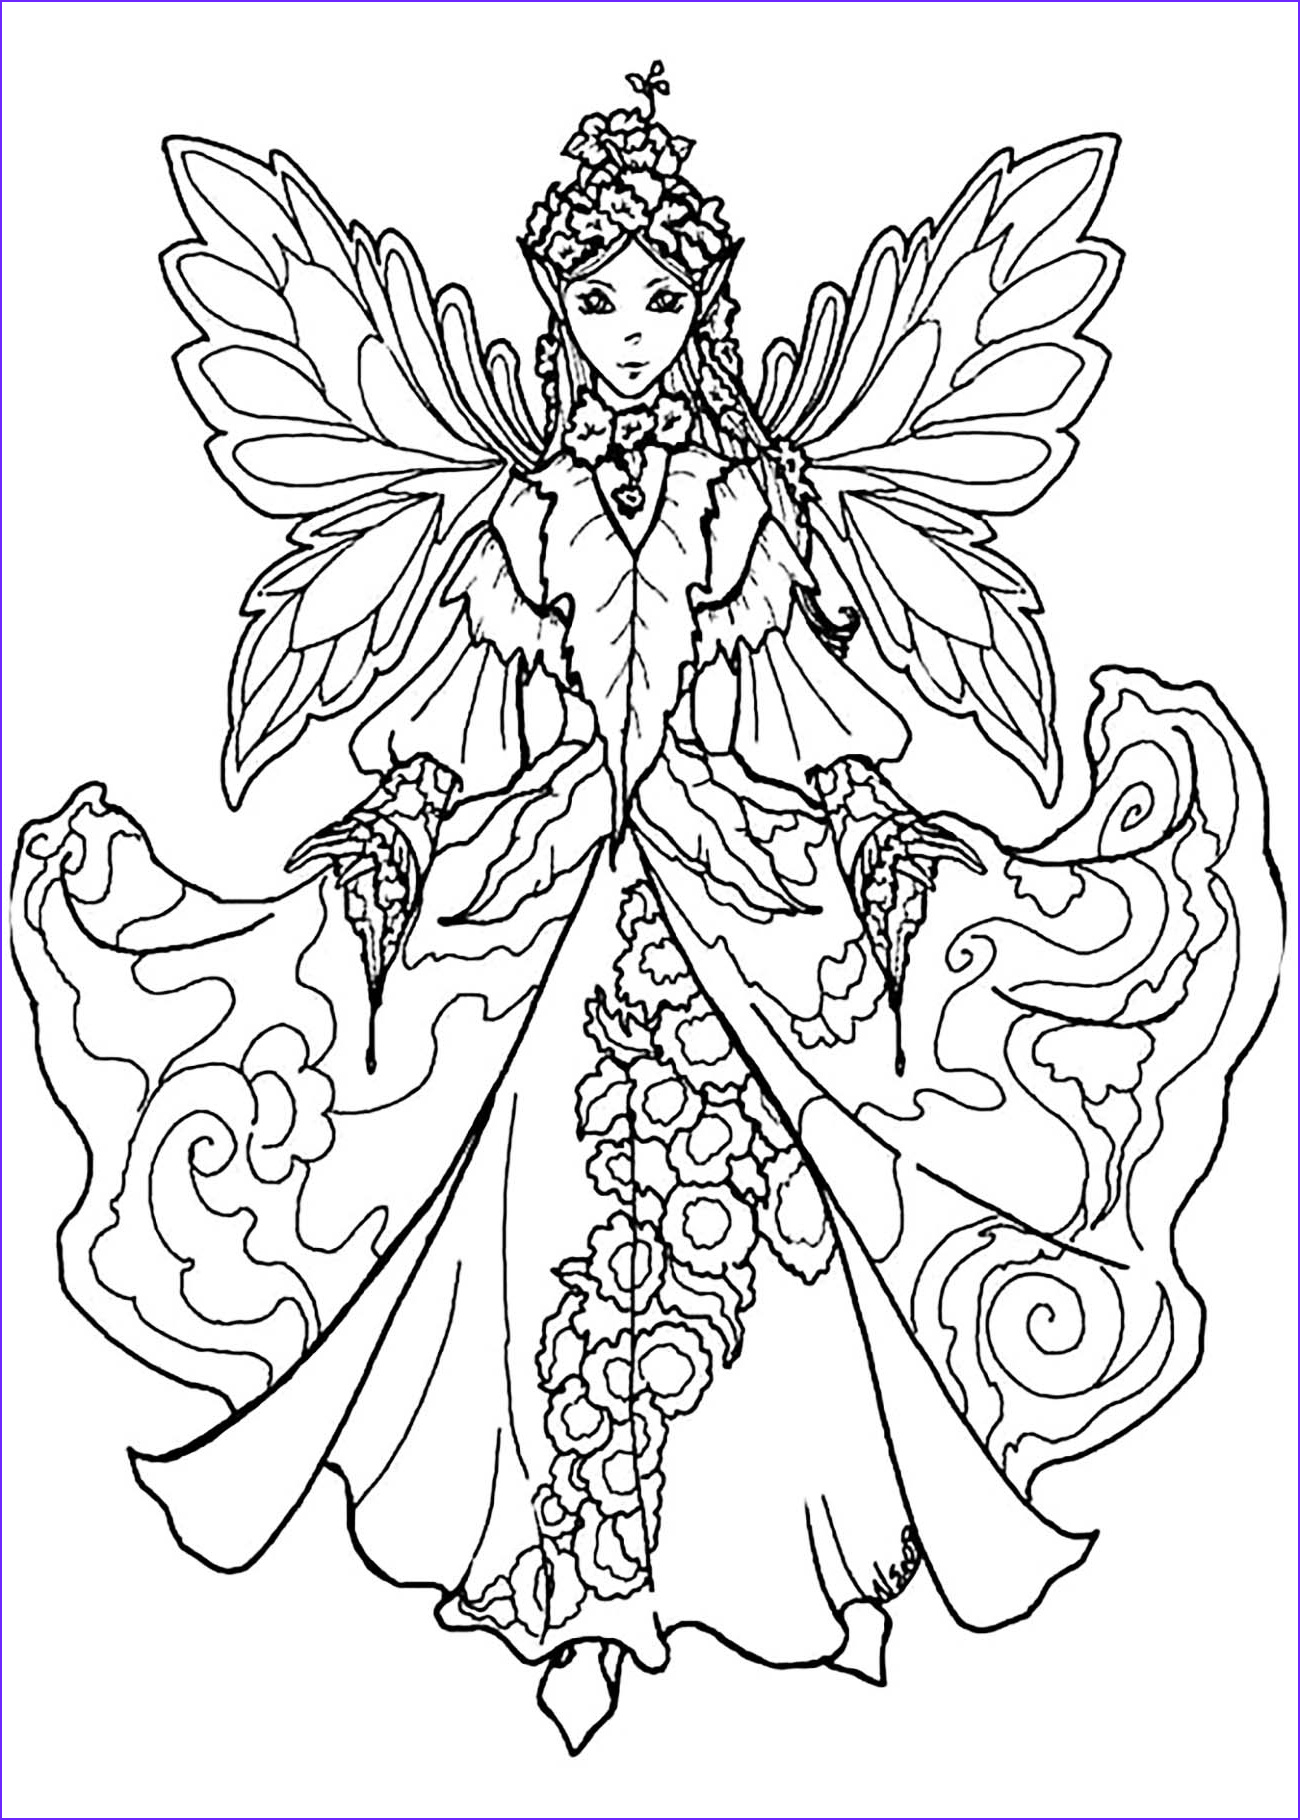 Fairy Coloring Books Beautiful Collection Fairy Coloring Pages for Adults Best Coloring Pages for Kids